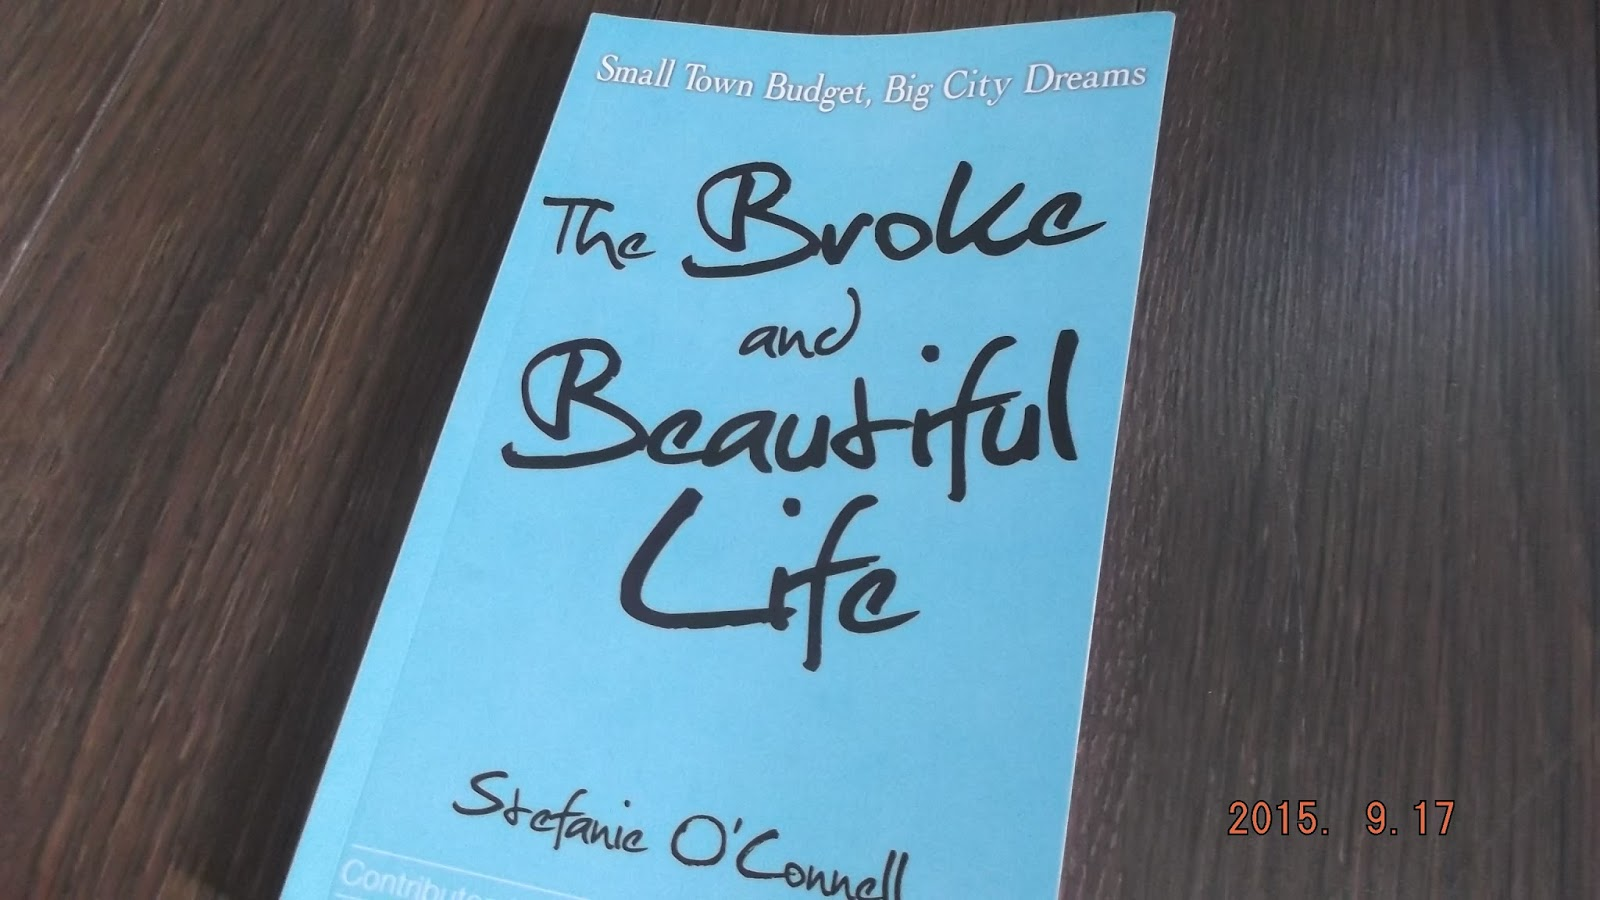 faff0379ba3 The Broke and Beautiful Life: Small Town Budget, Big CityDreams. This book  is written by Stefanie O'Connell. She moved to New York to become a  Broadway ...